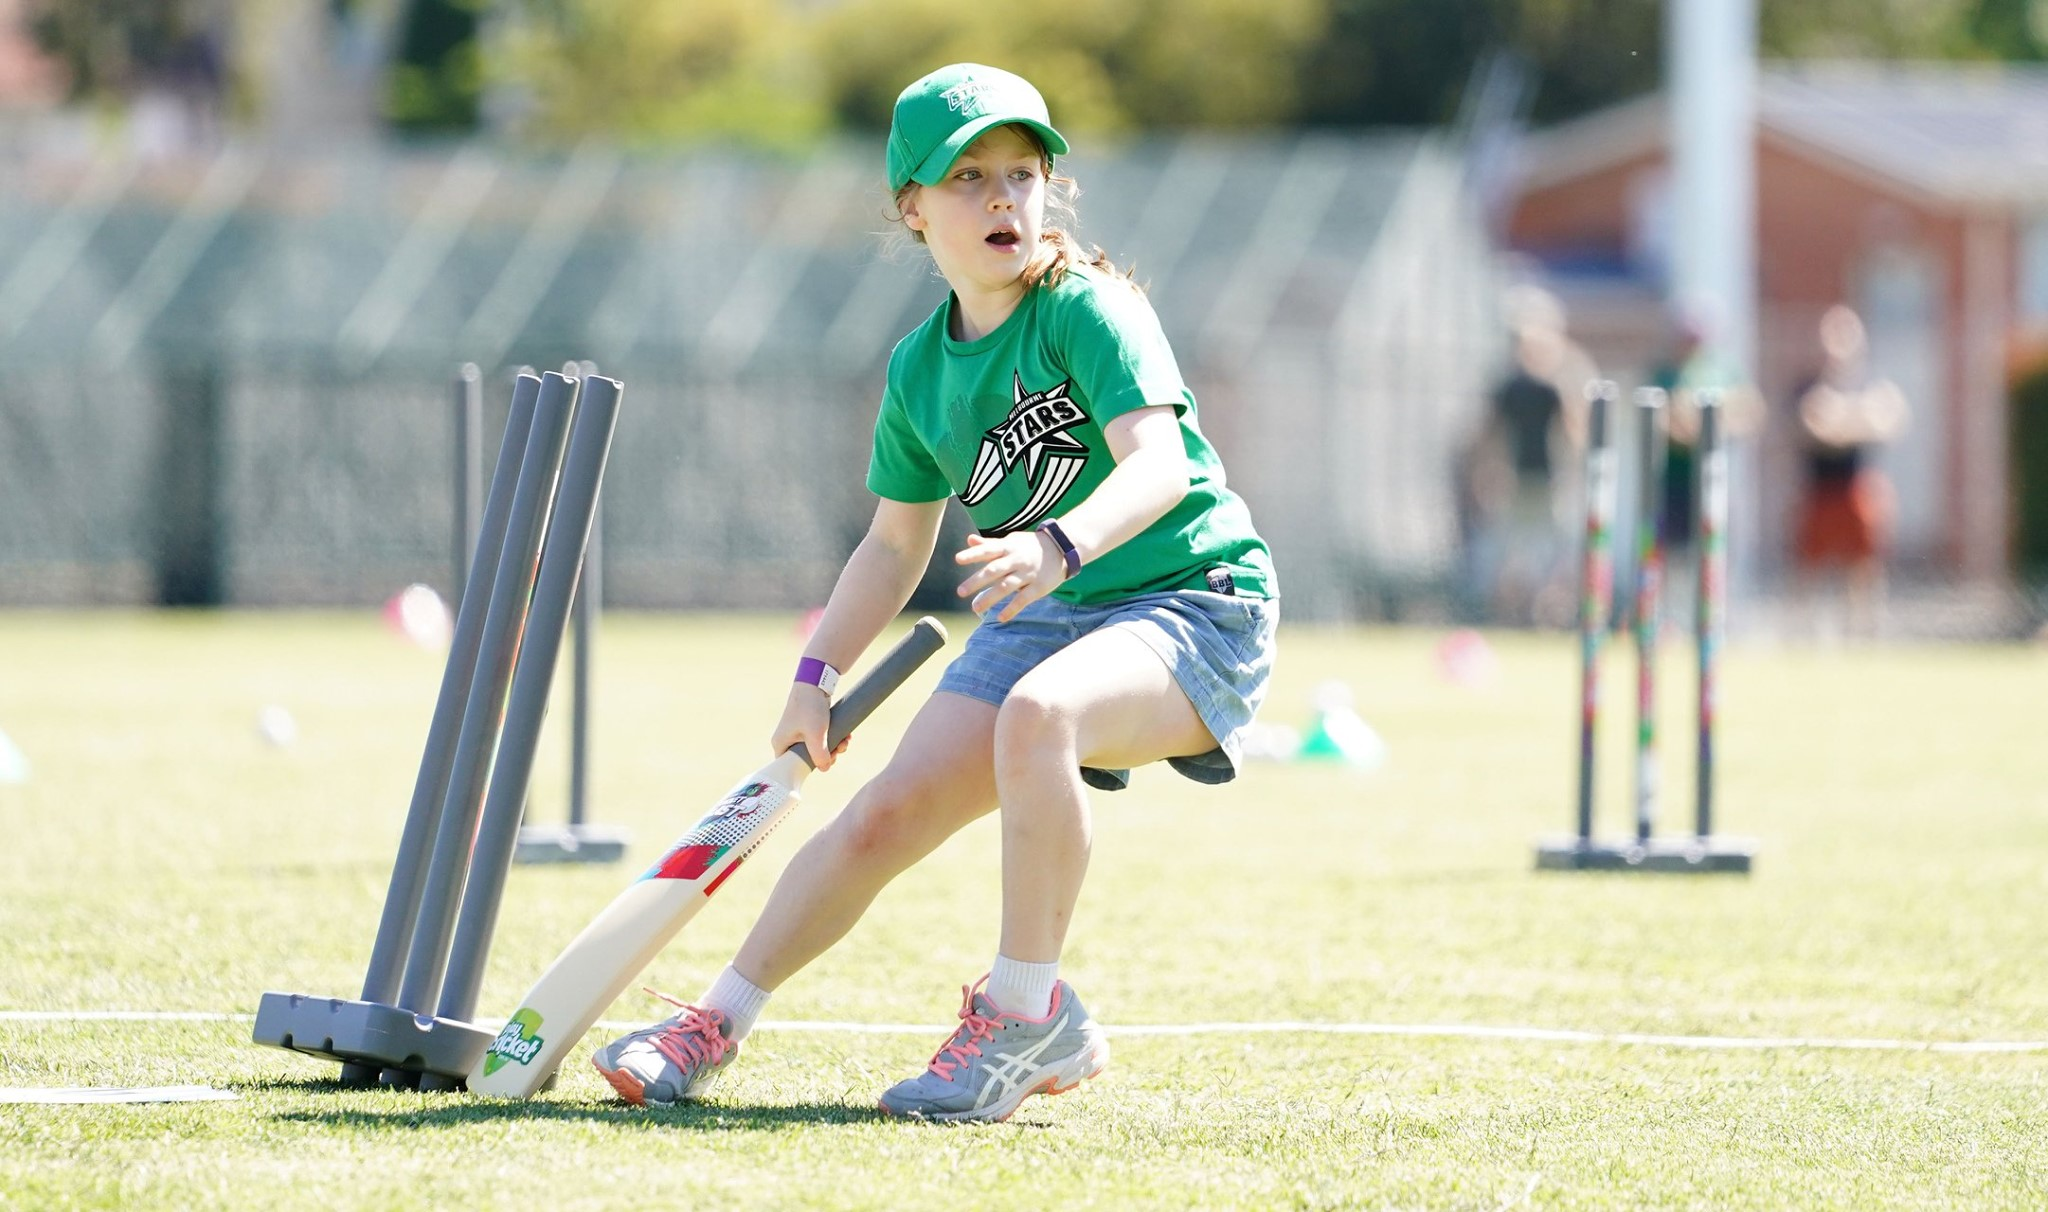 Inspiring girls to get involved in cricket